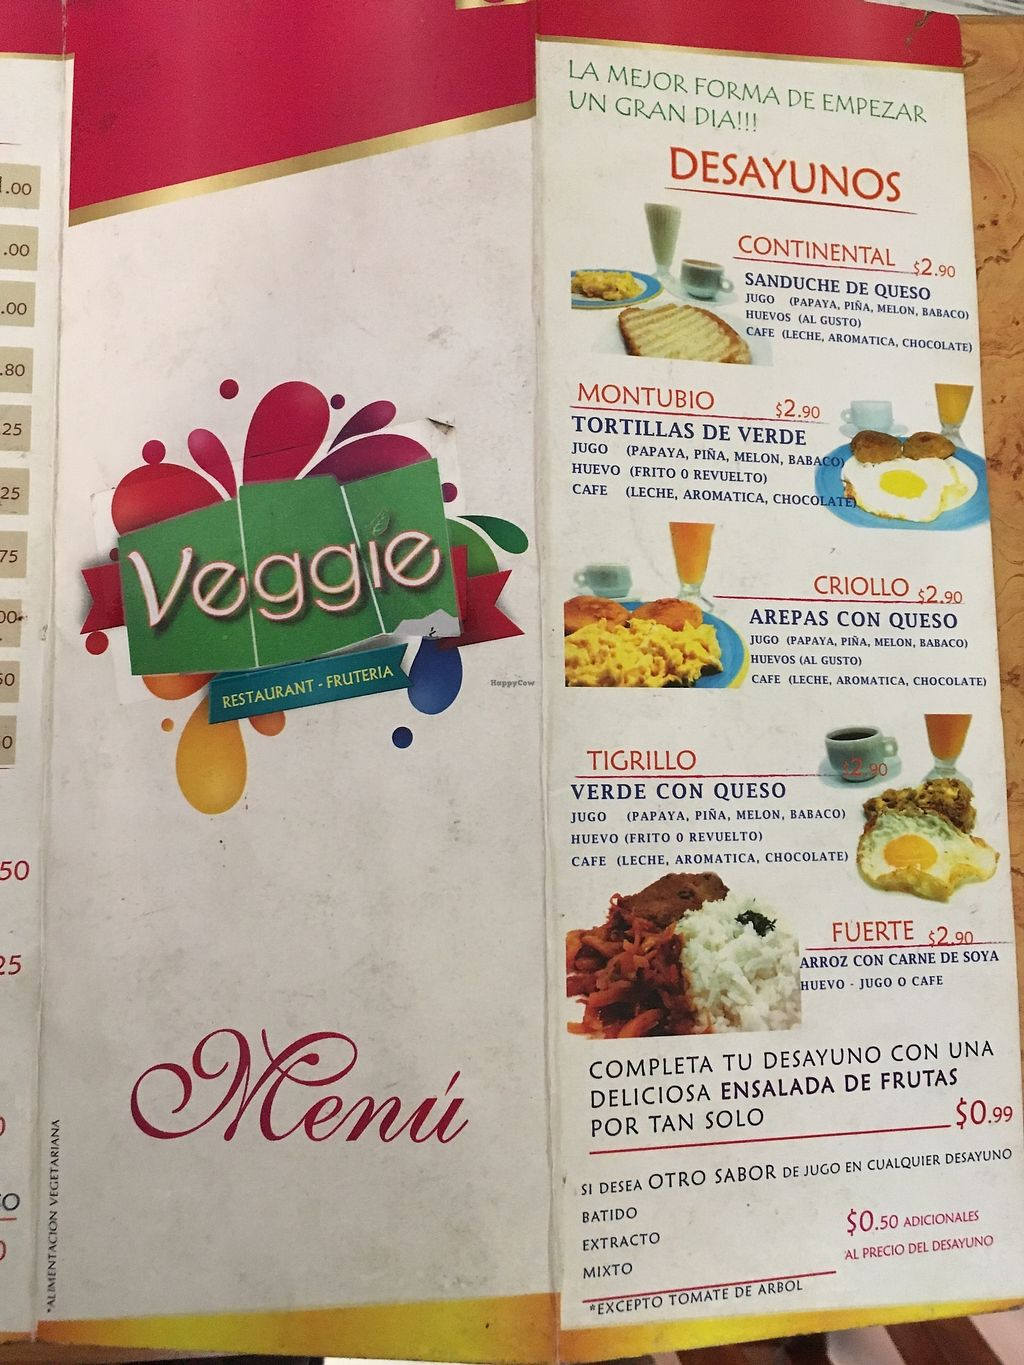 """Photo of Veggie  by <a href=""""/members/profile/peas-full"""">peas-full</a> <br/>menù  <br/> October 1, 2017  - <a href='/contact/abuse/image/102029/310355'>Report</a>"""